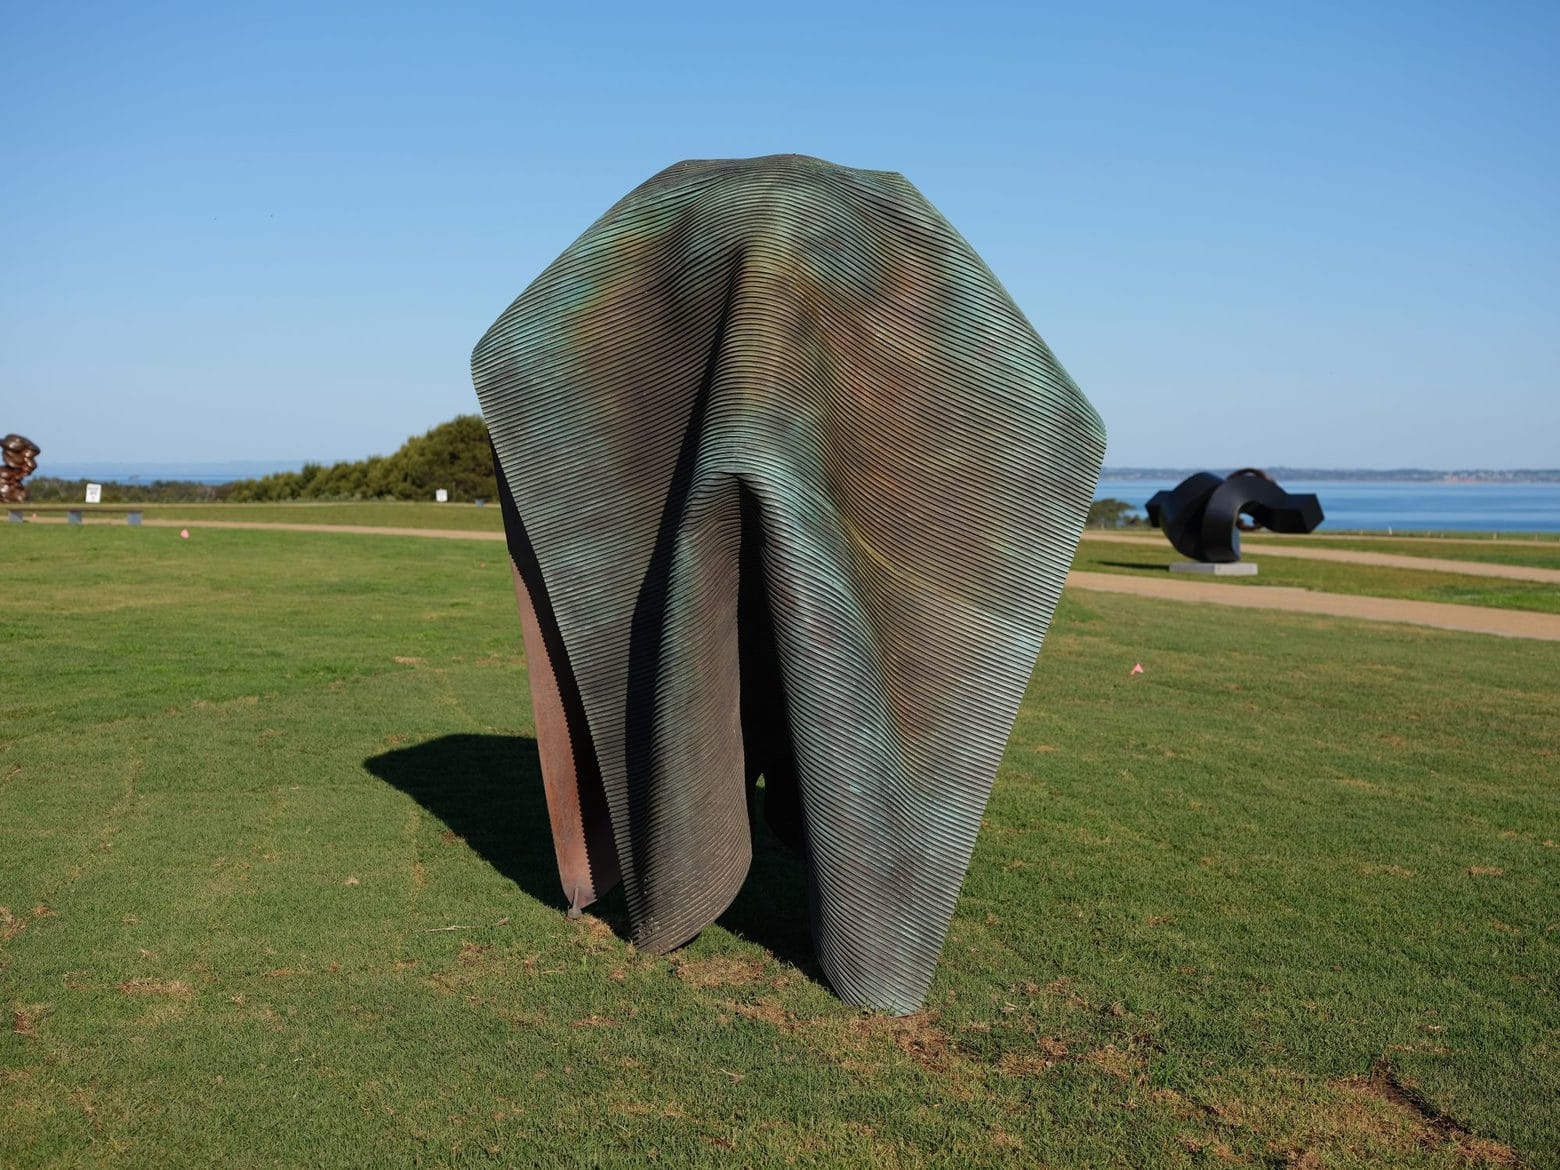 Andrew Rogers, 'Folded', 2003, bronze, 106 x 74 x 50 cm, edition of 12 + 1AP